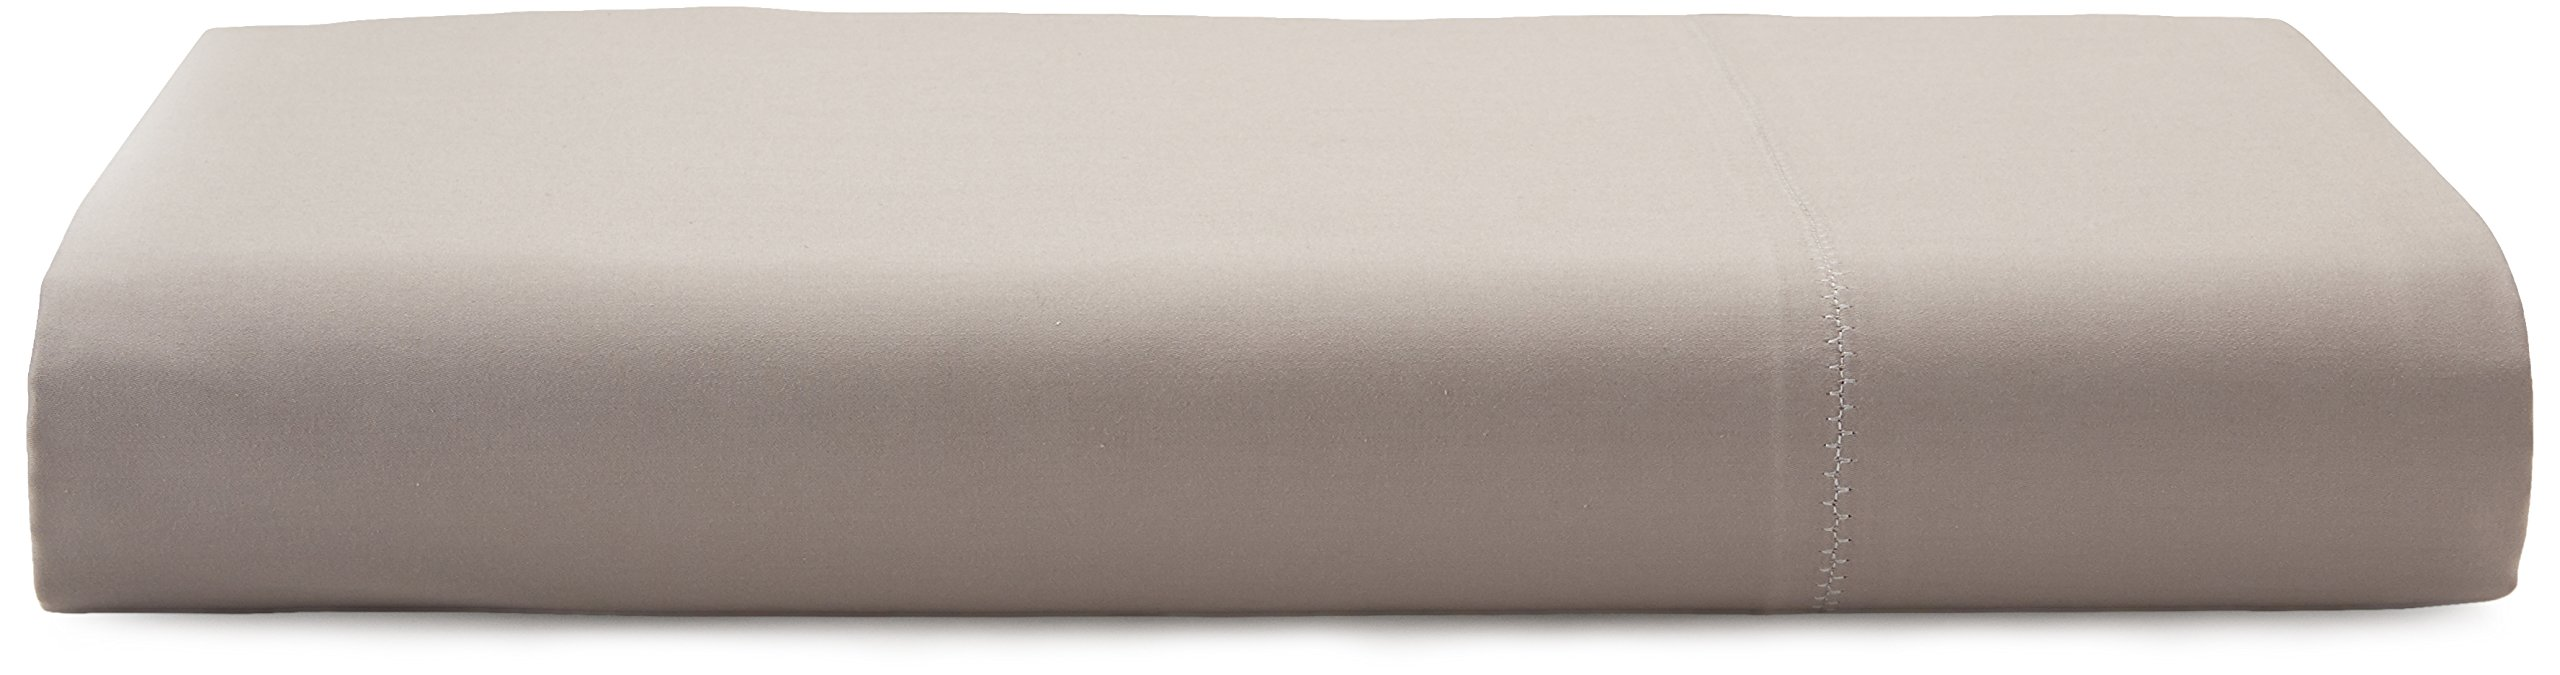 Calvin Klein Home Florence Stitch Flat Sheet, Queen, Dusty Lilac